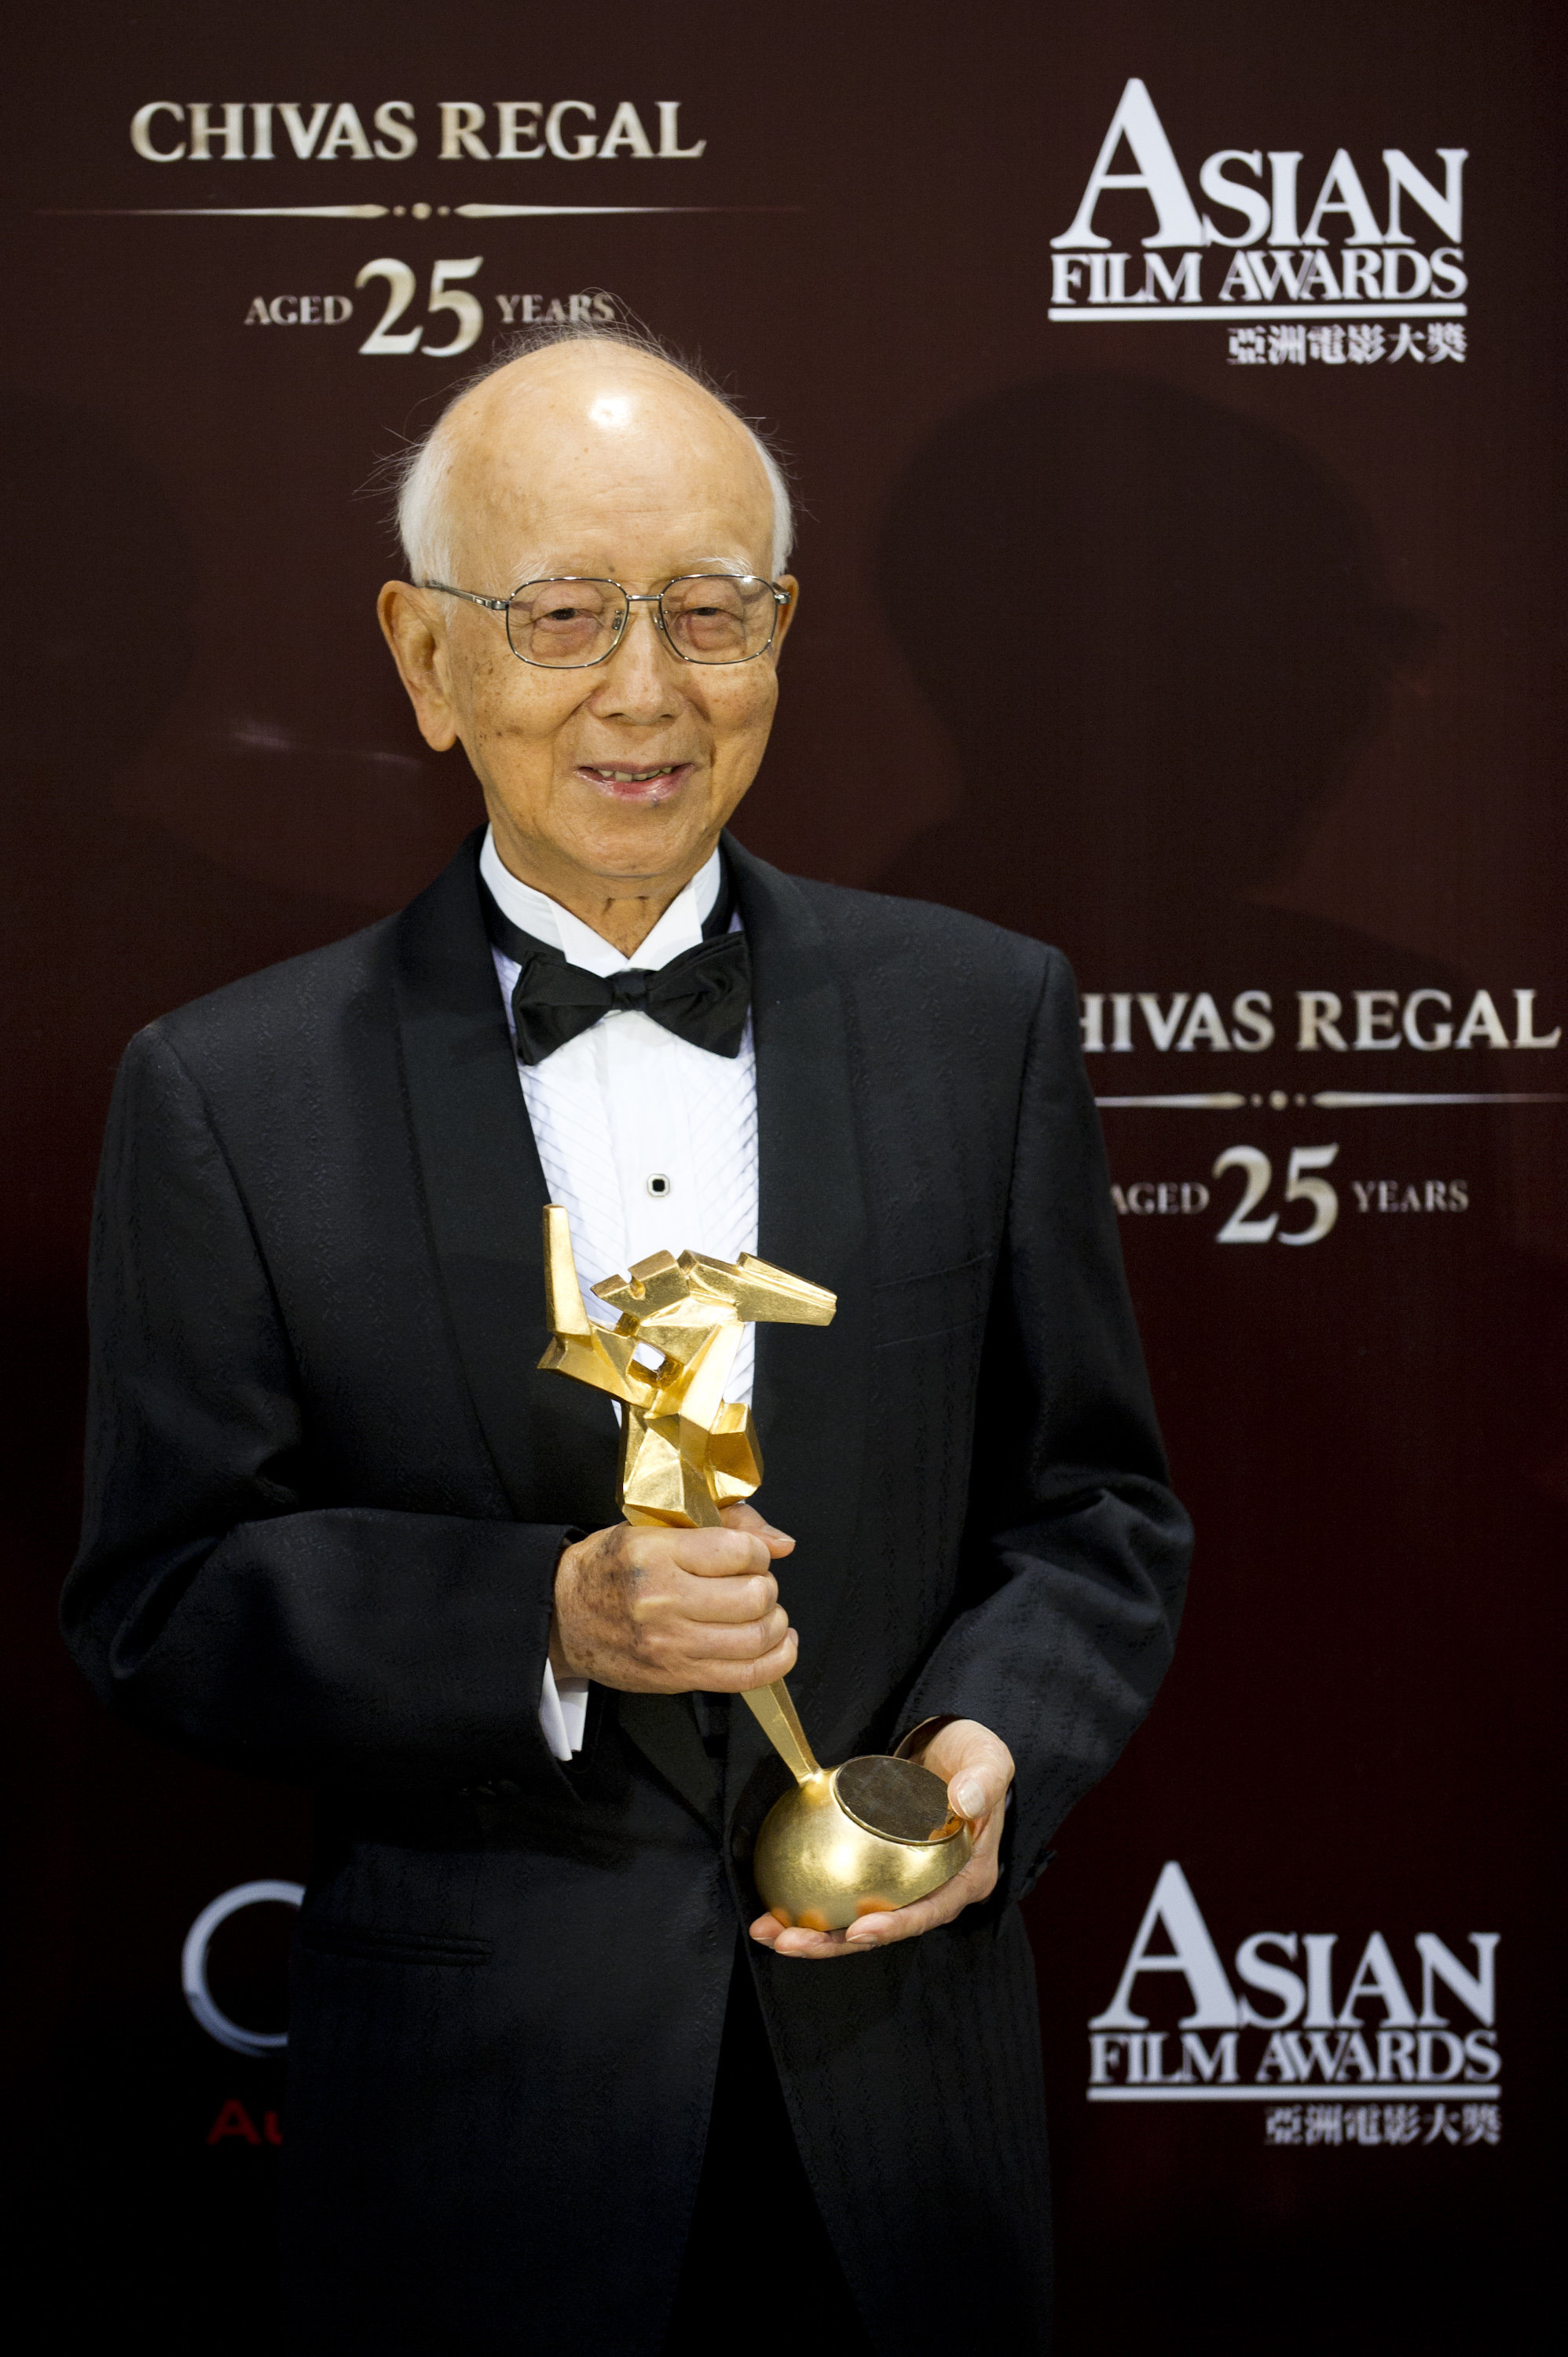 RESTRICTED UNDER CONTRACT